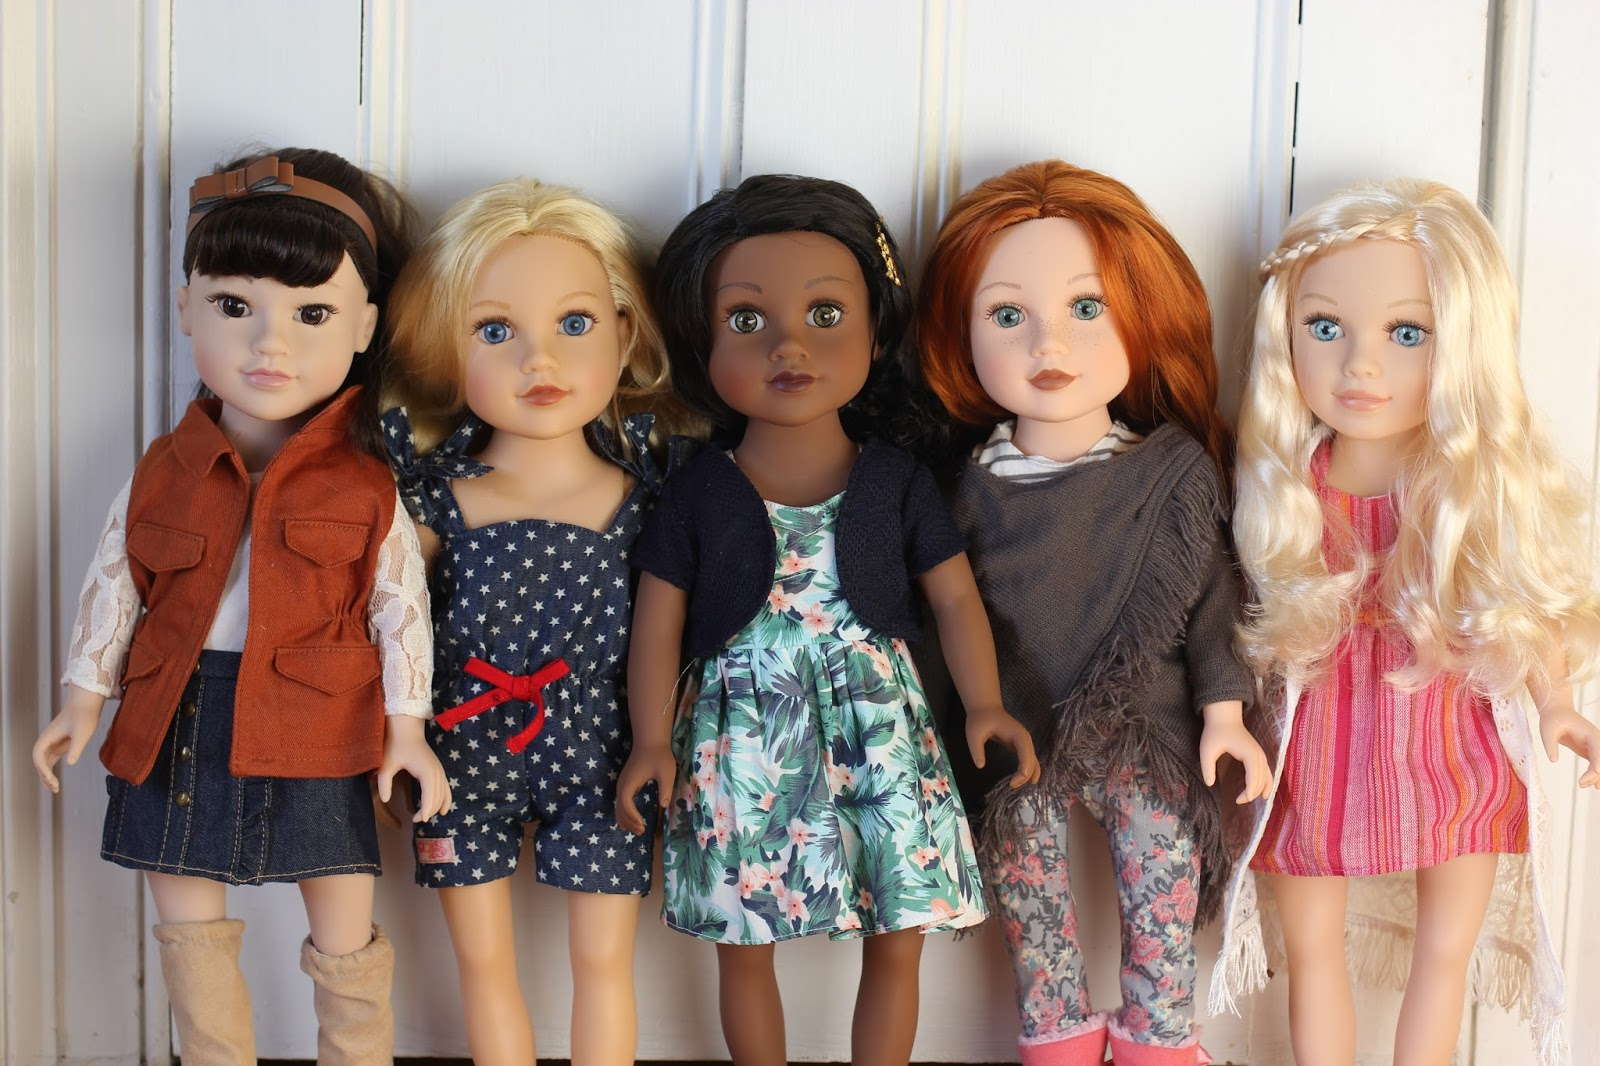 c9156249e64 For those of you that collect 18 inch dolls, do you have any Journey Girls?  Are you sad to see them go? Didn't Barnes and Noble have a doll line called  ...